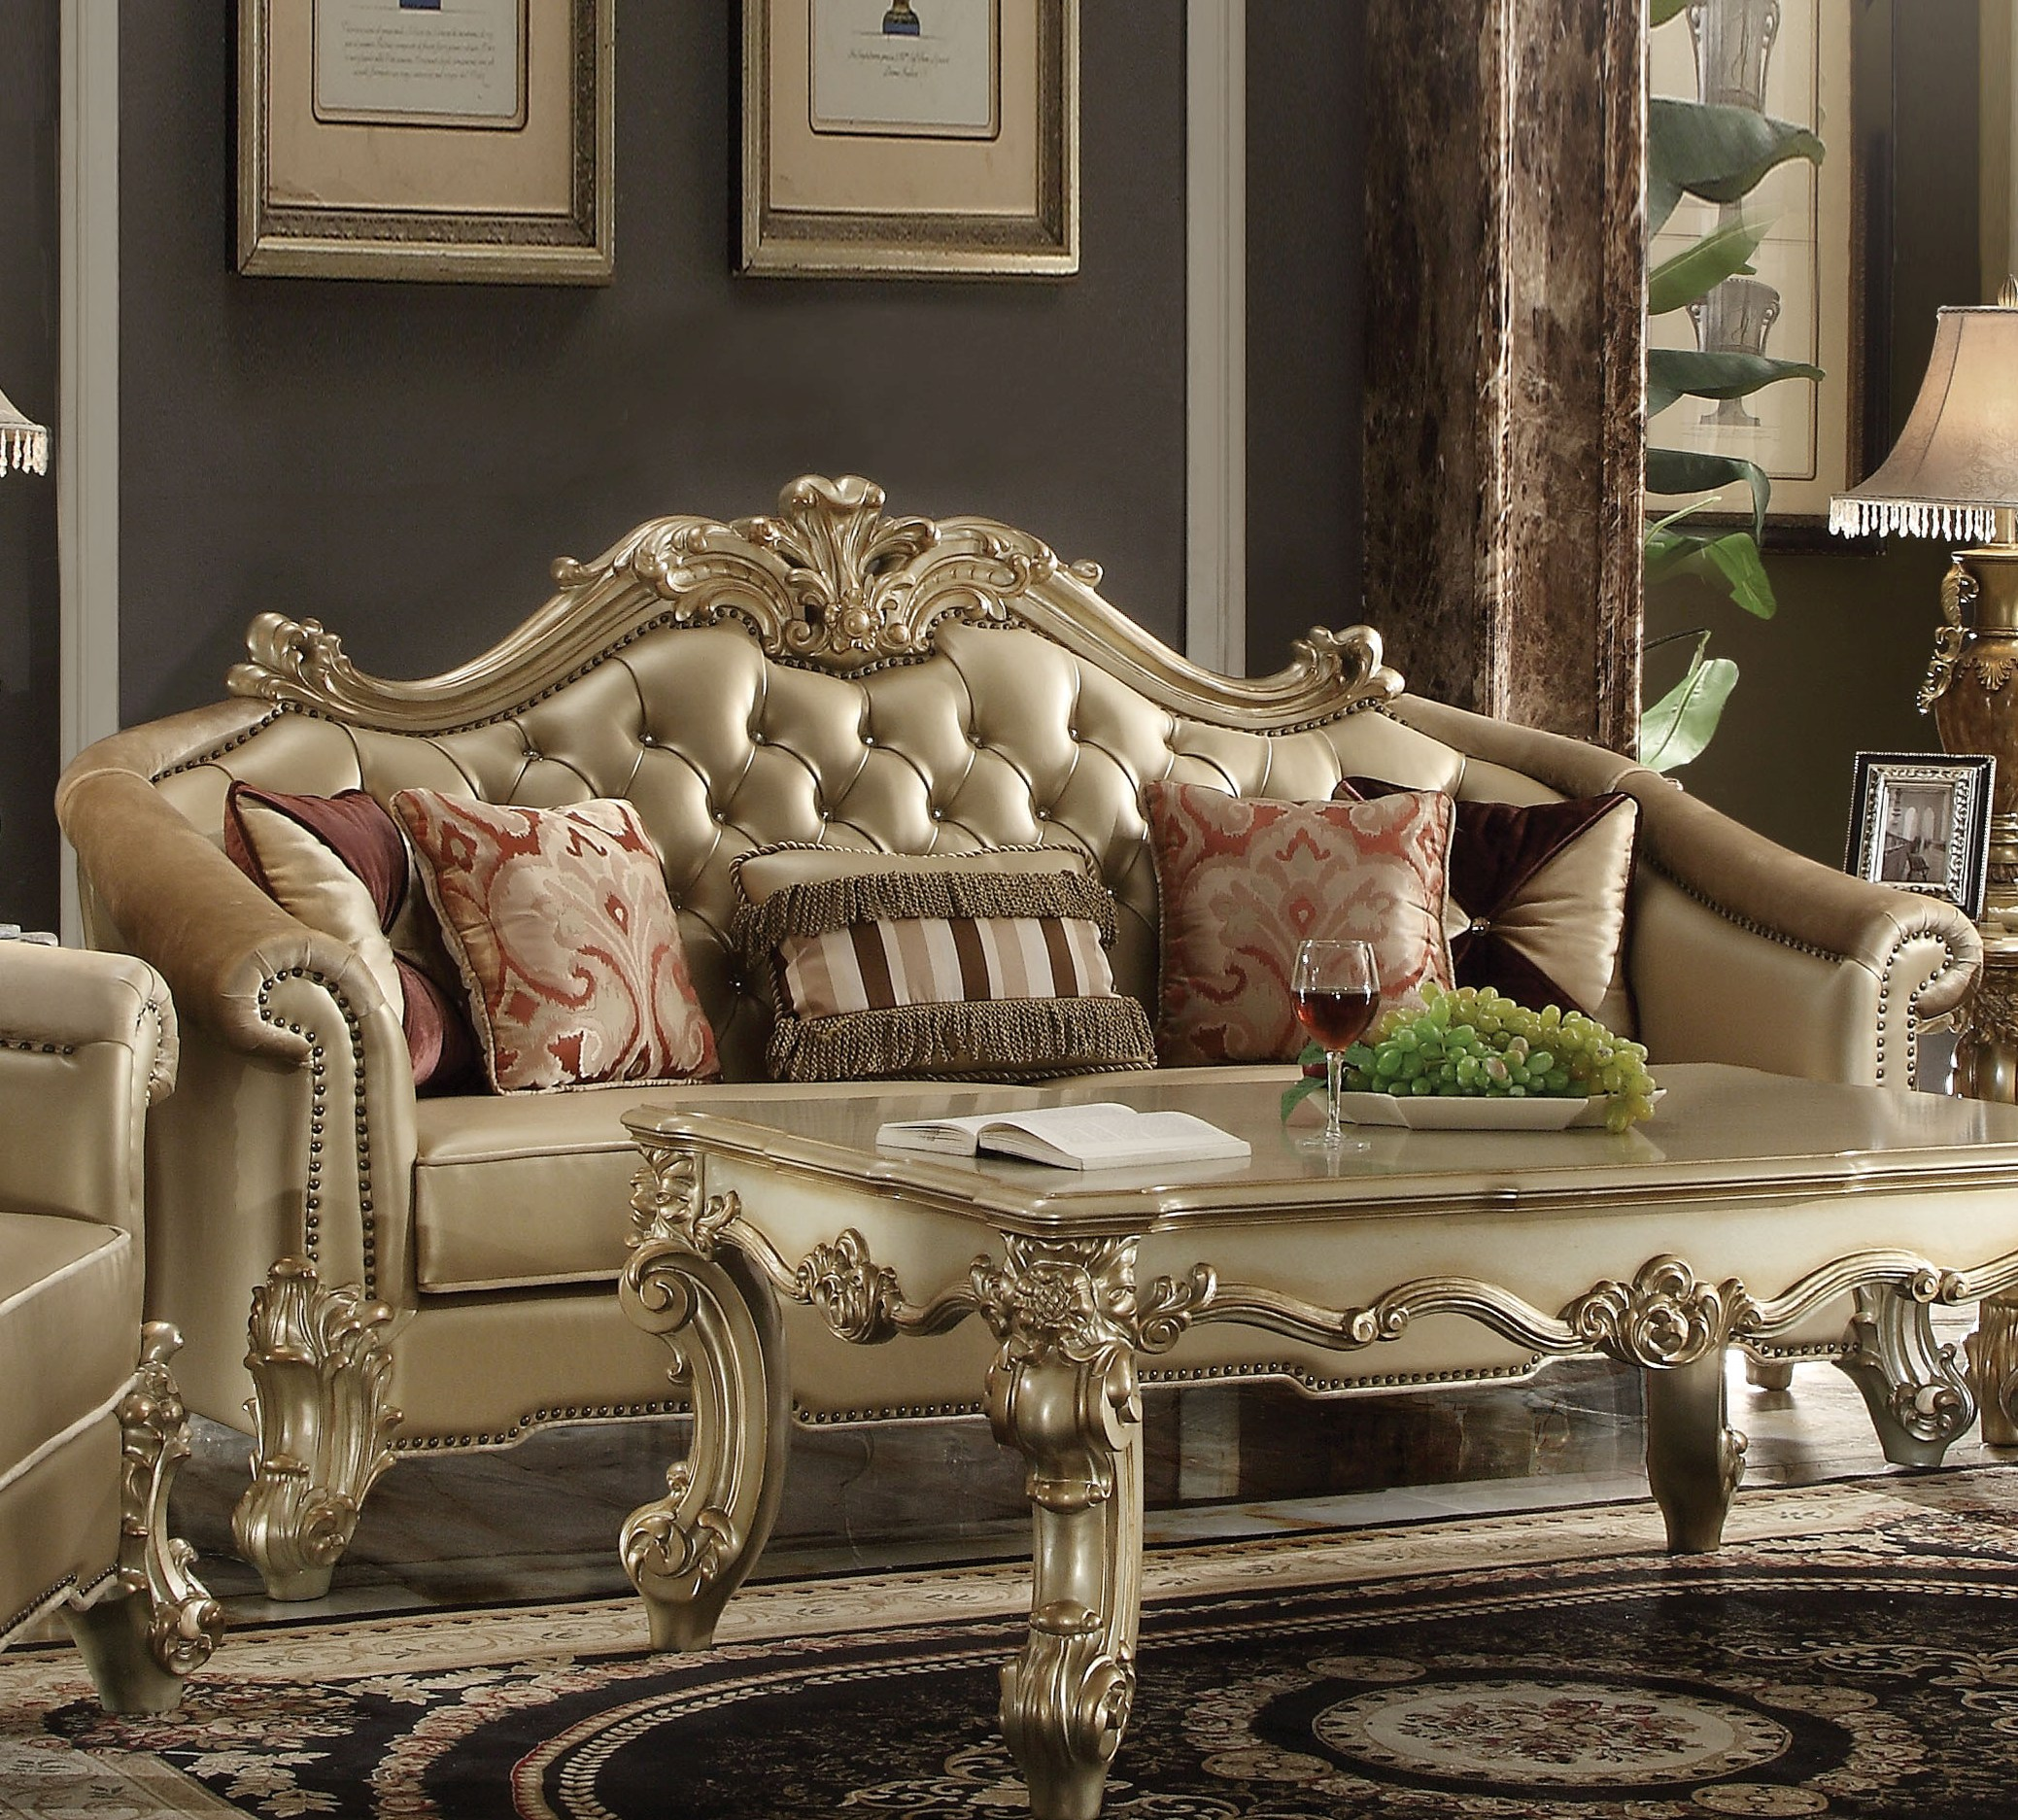 Tremendous Acme Furniture Vendome Ii Gold Sofa With Five Pillows Home Interior And Landscaping Dextoversignezvosmurscom